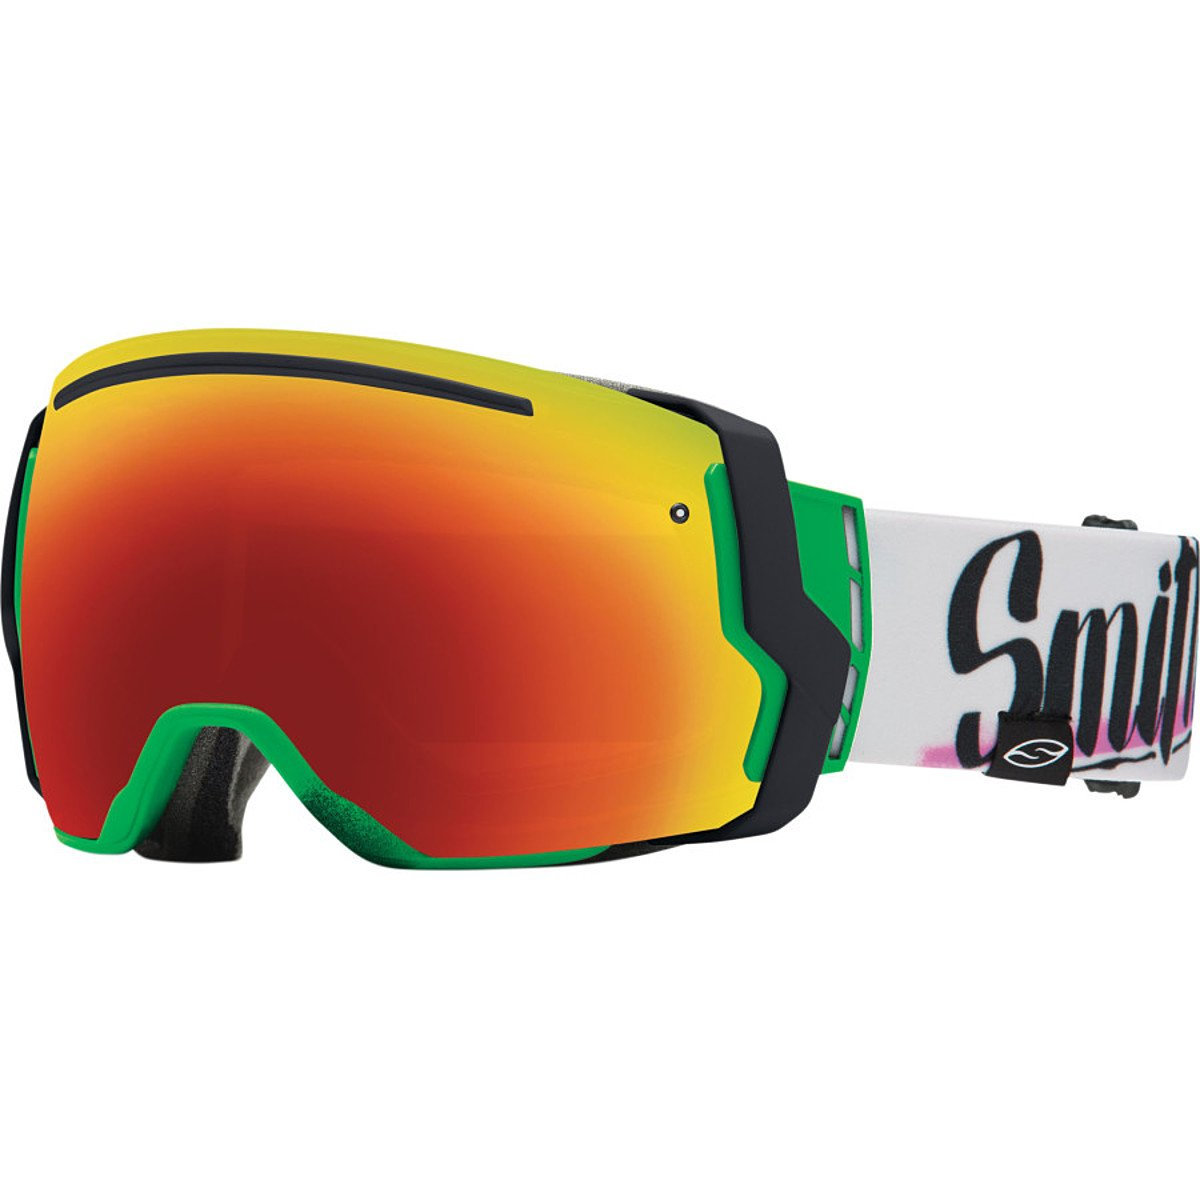 Smith Optics I/O7 Vaporator Series Snocross Snowmobile Goggles Eyewear - Neon Baron Von Fancy/Red SOL-X/Blue Sensor / Medium by Smith Optics